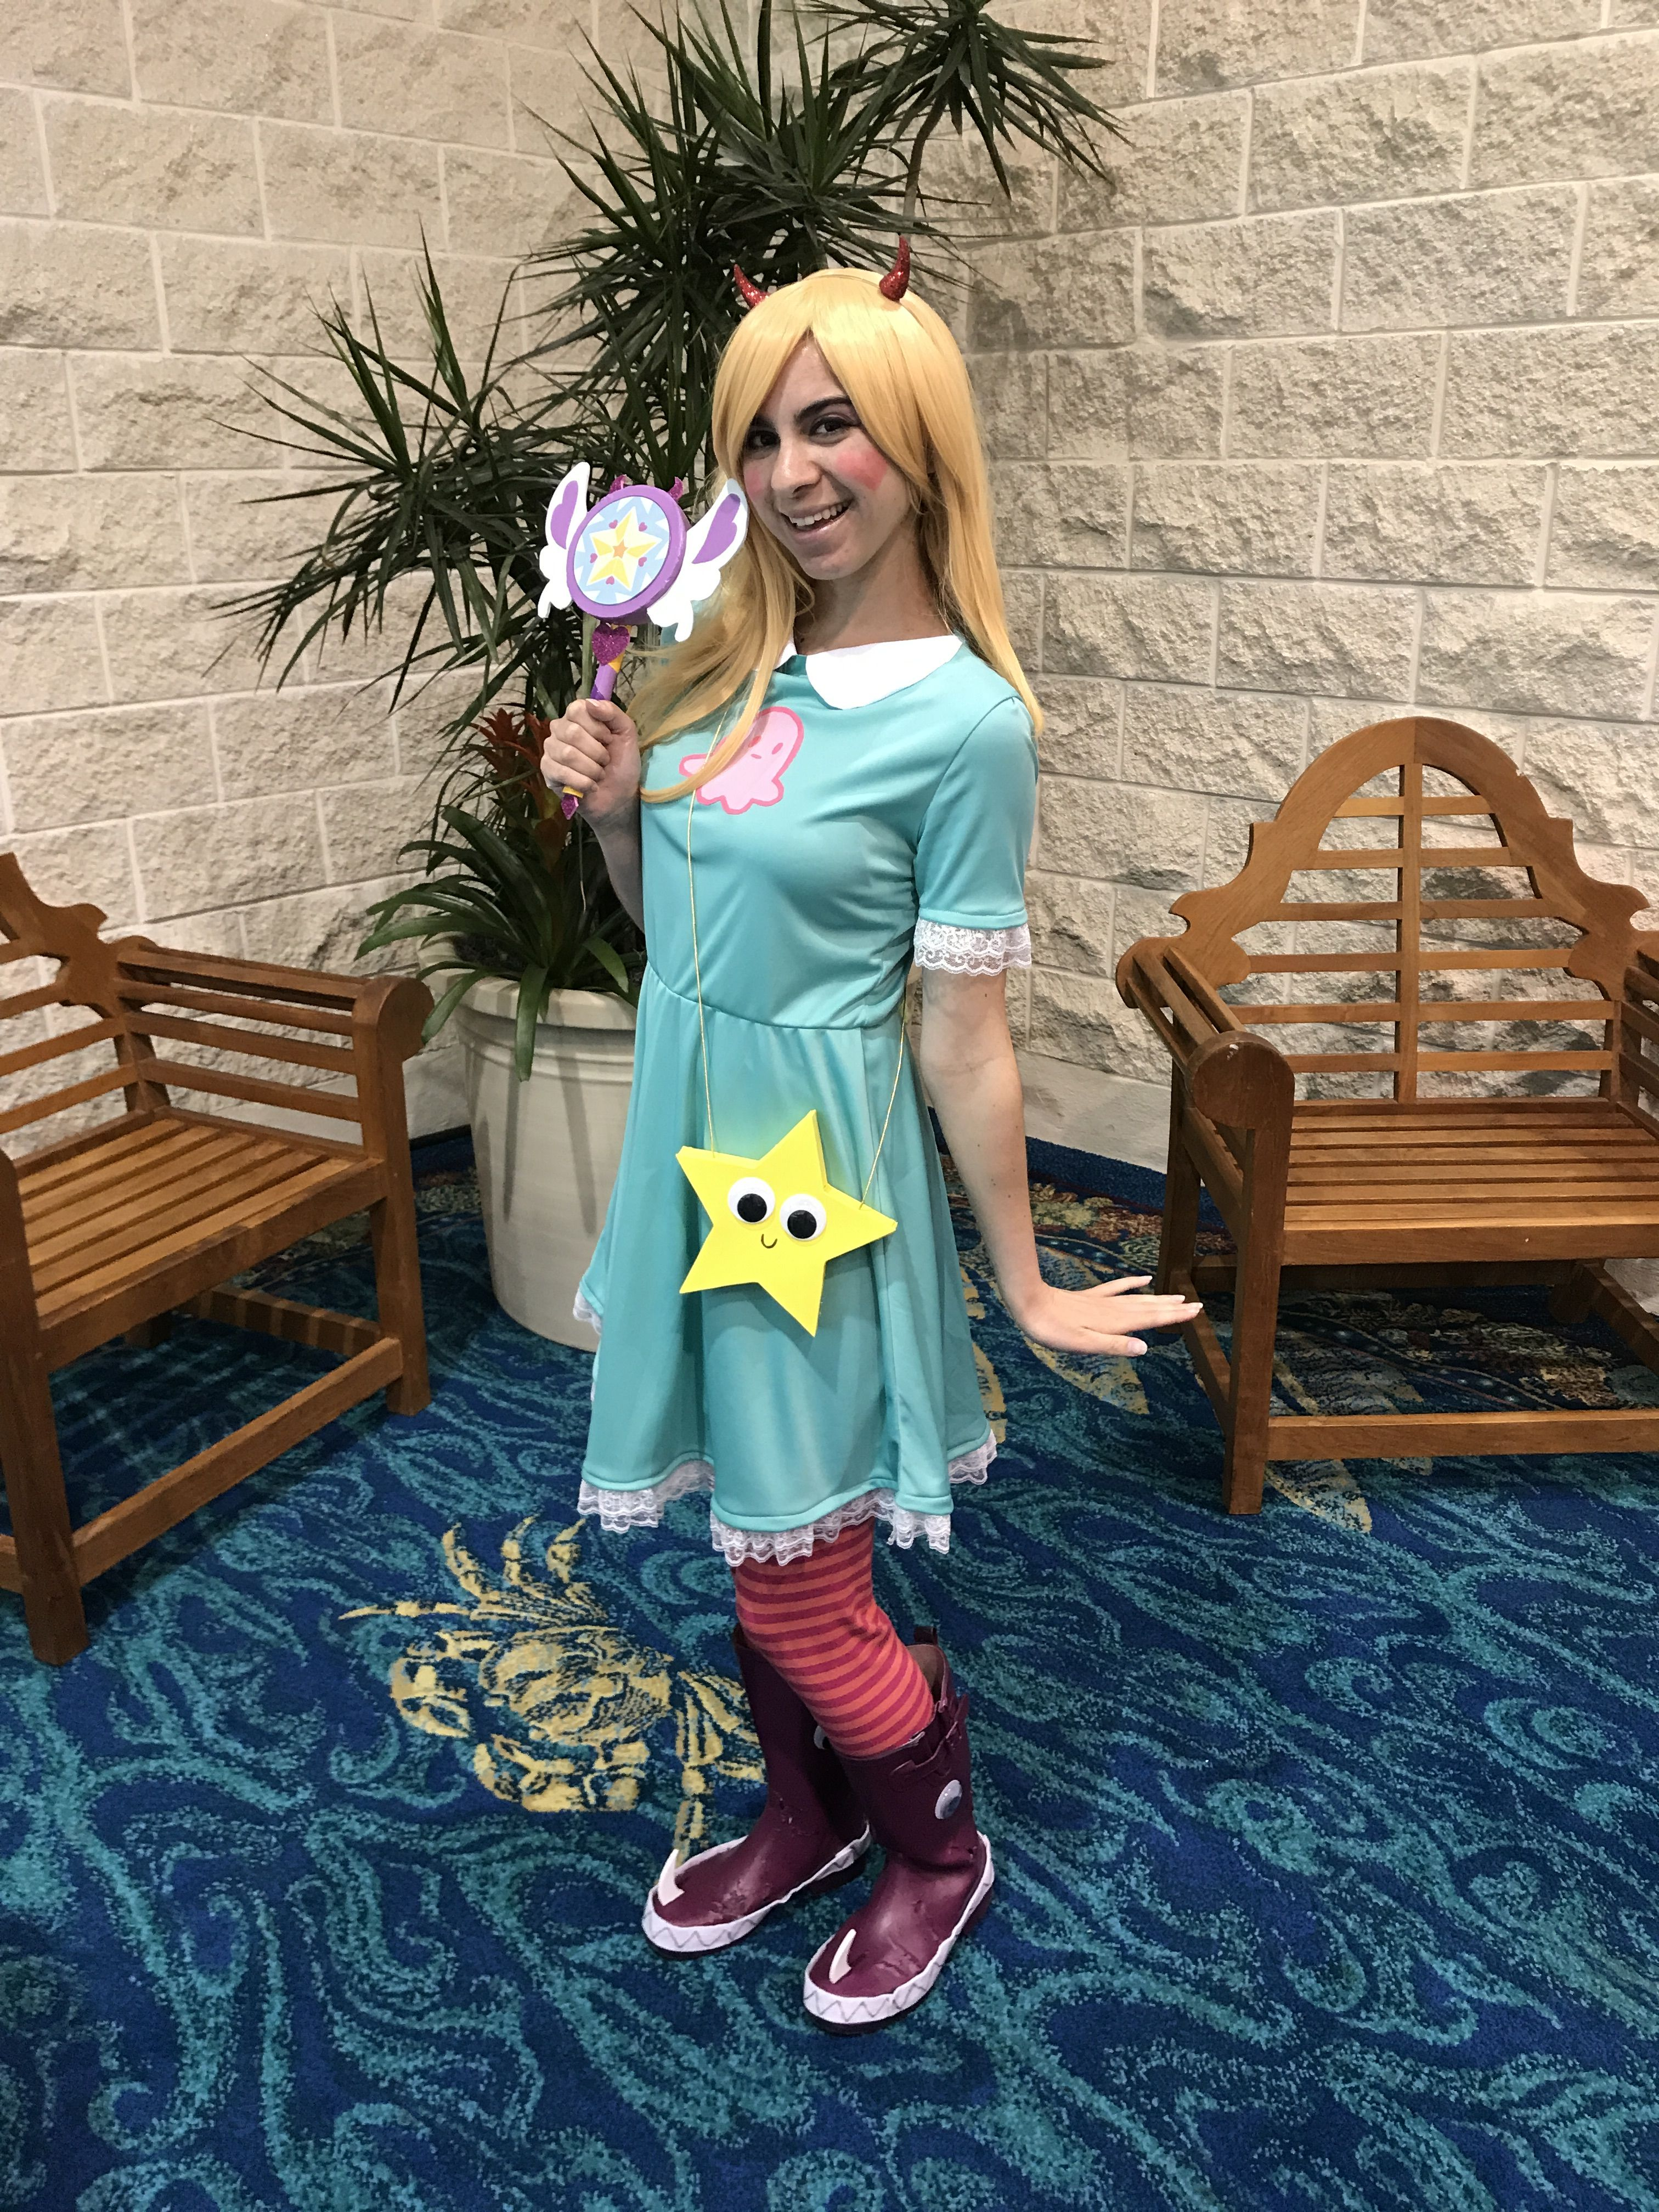 Star Vs The Forces of Evil cosplay at Florida Supercon 2018